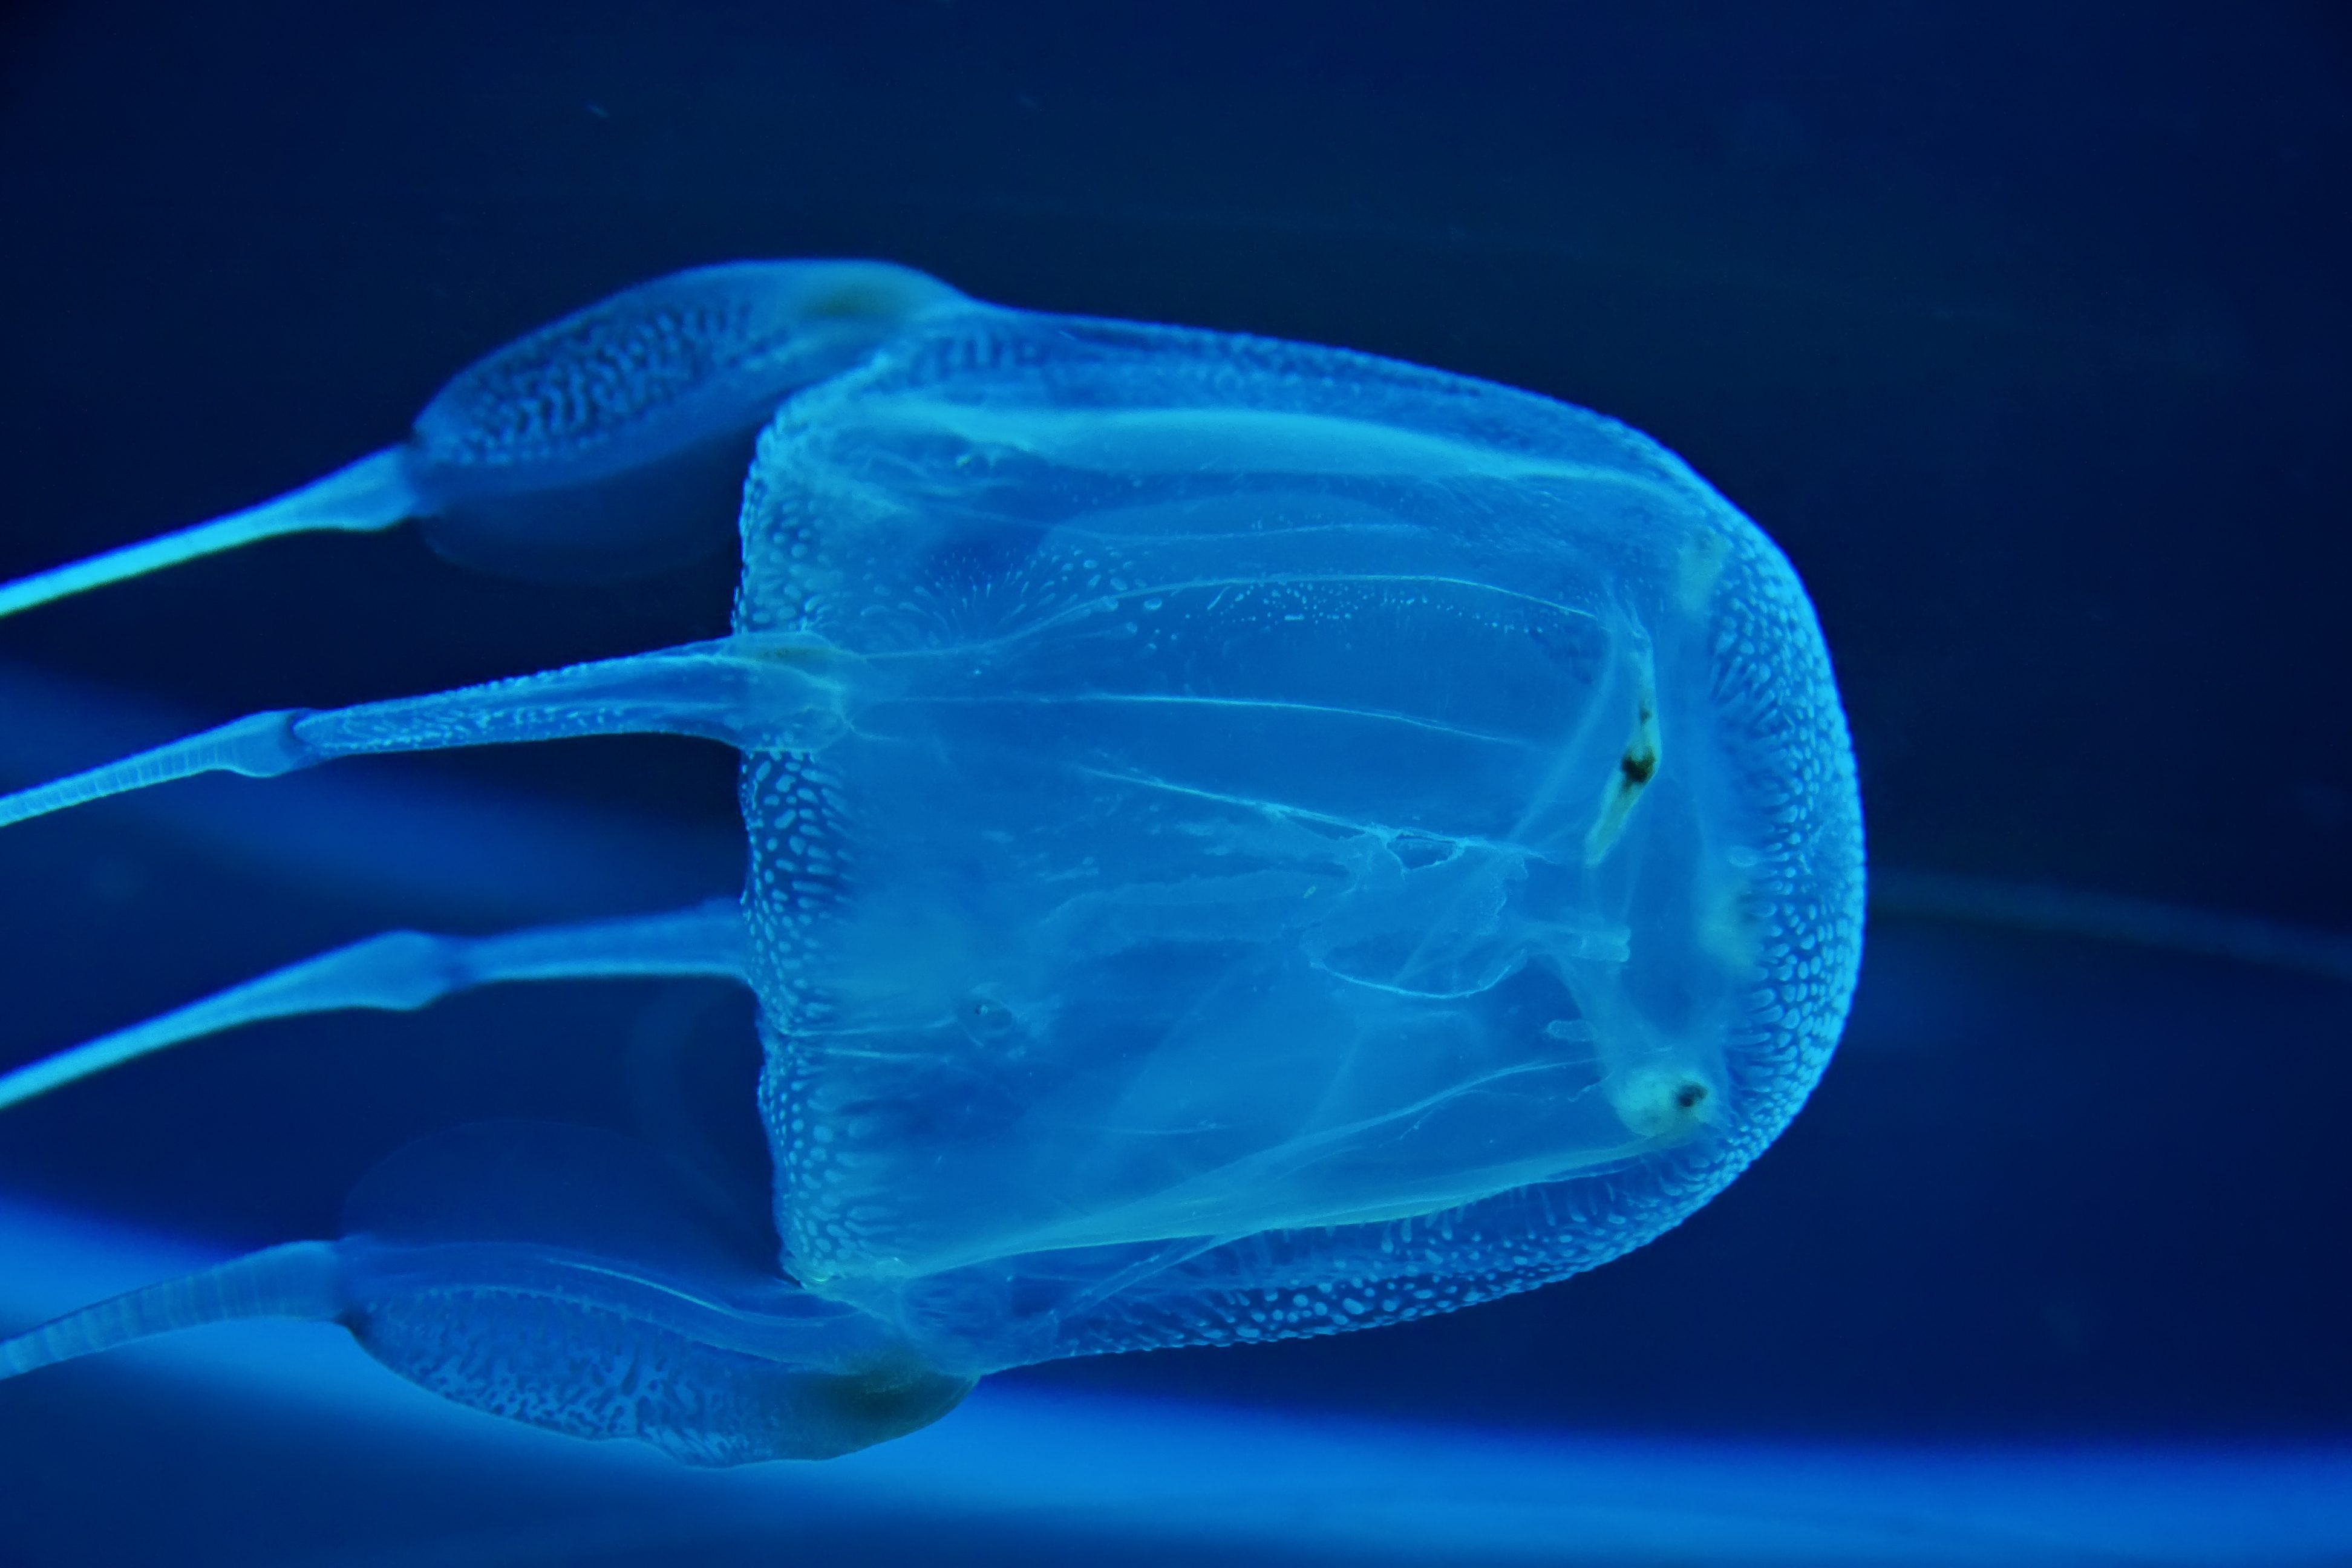 box jelly fish photographed in aquarium